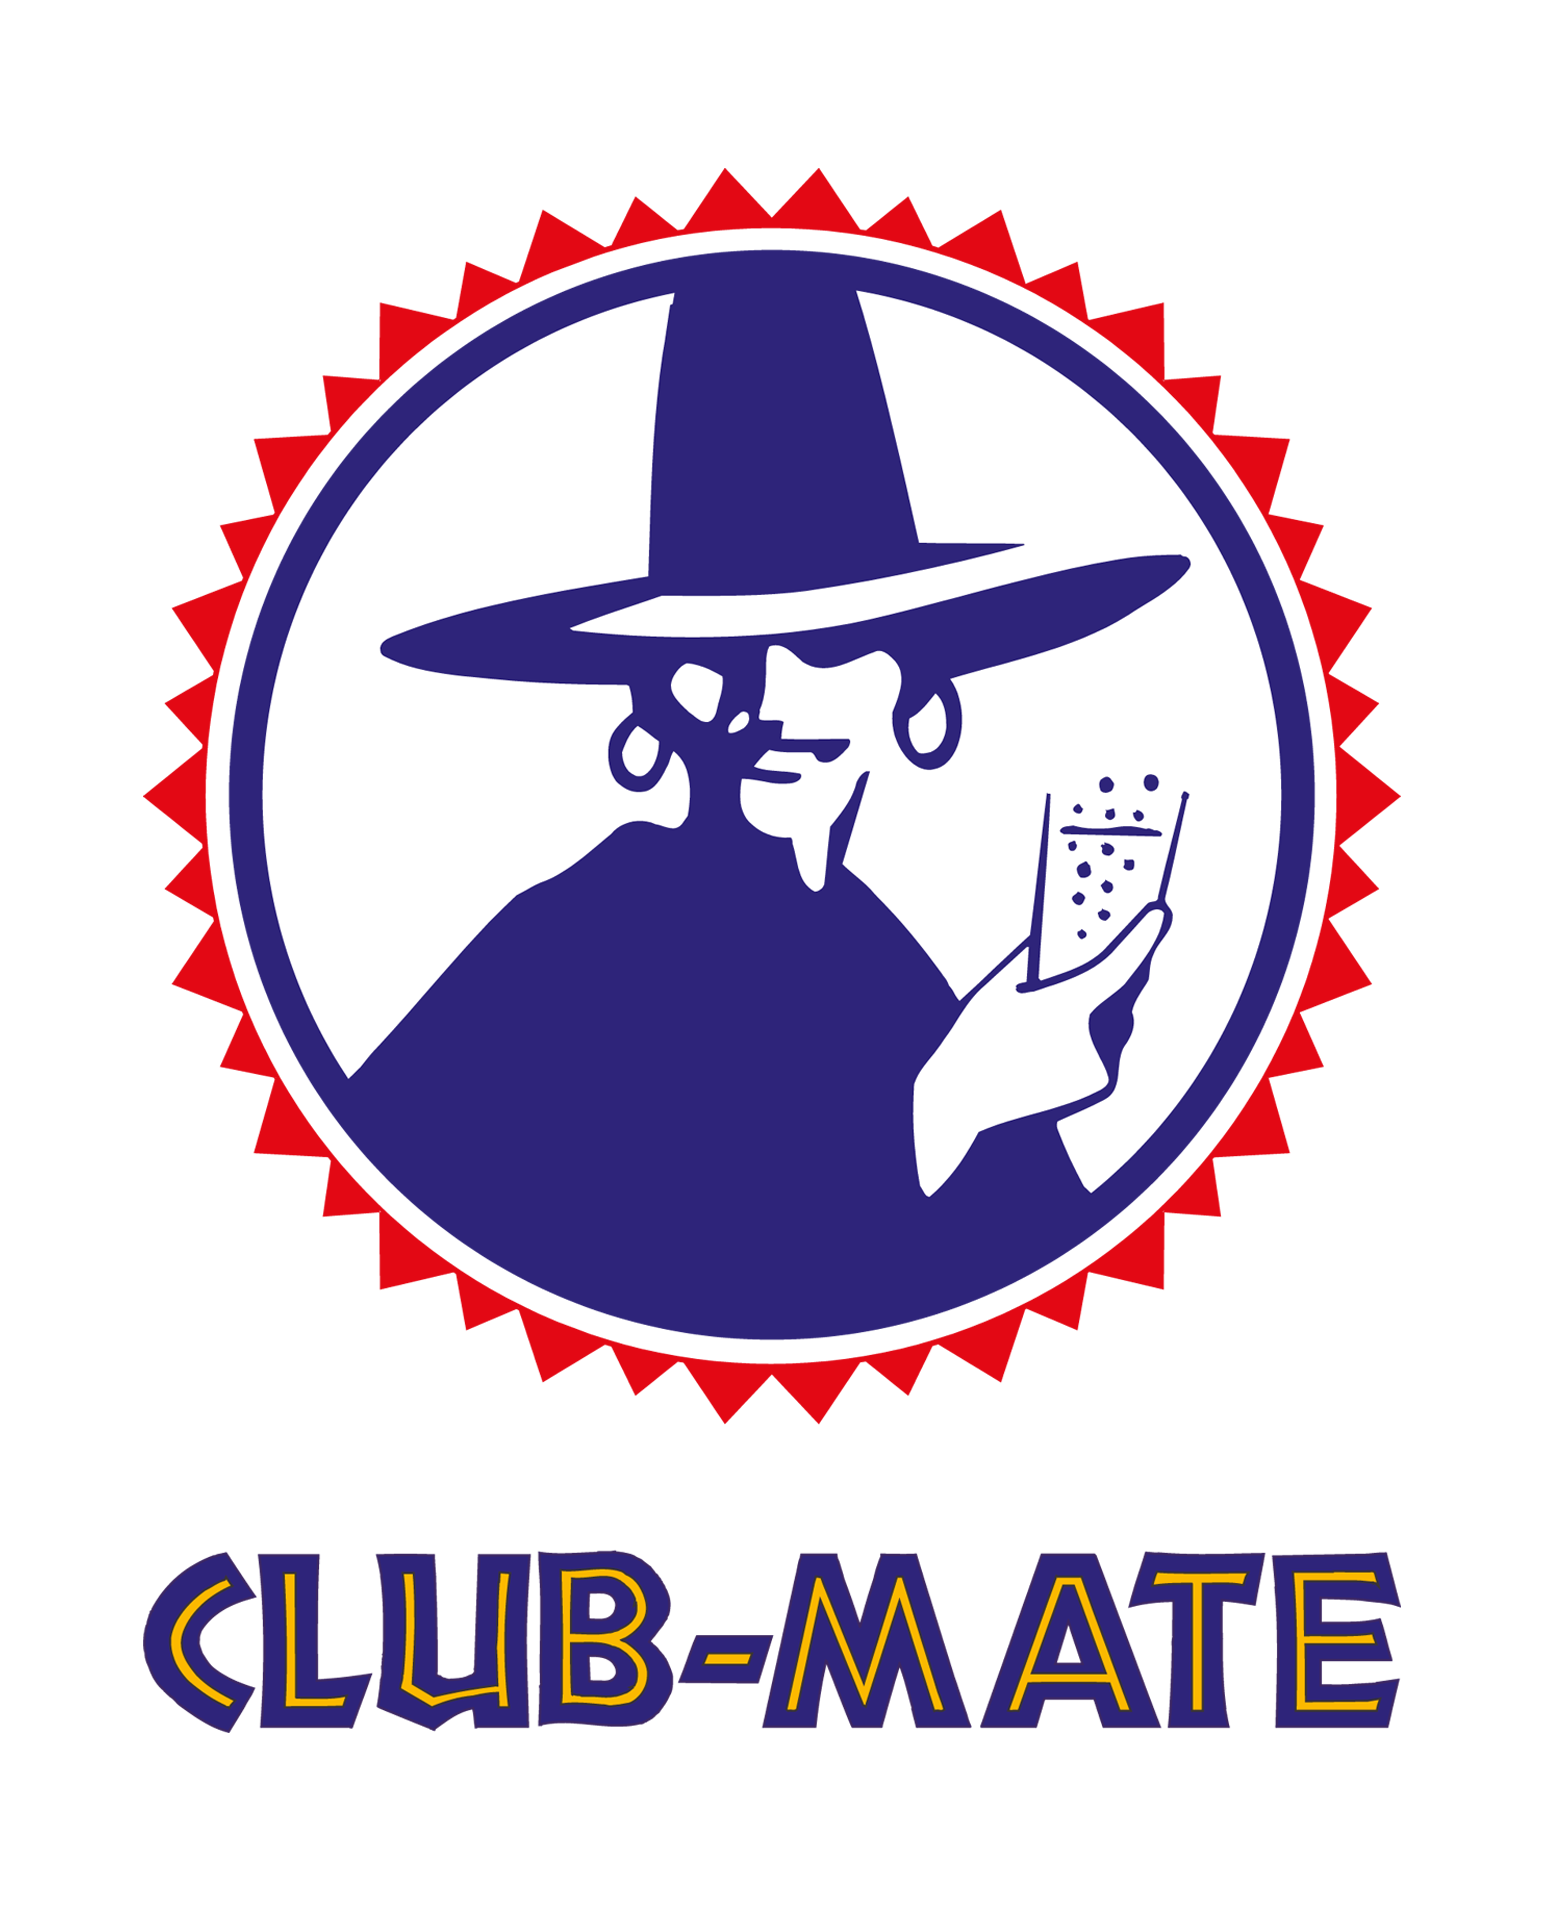 logo-club-mate-1